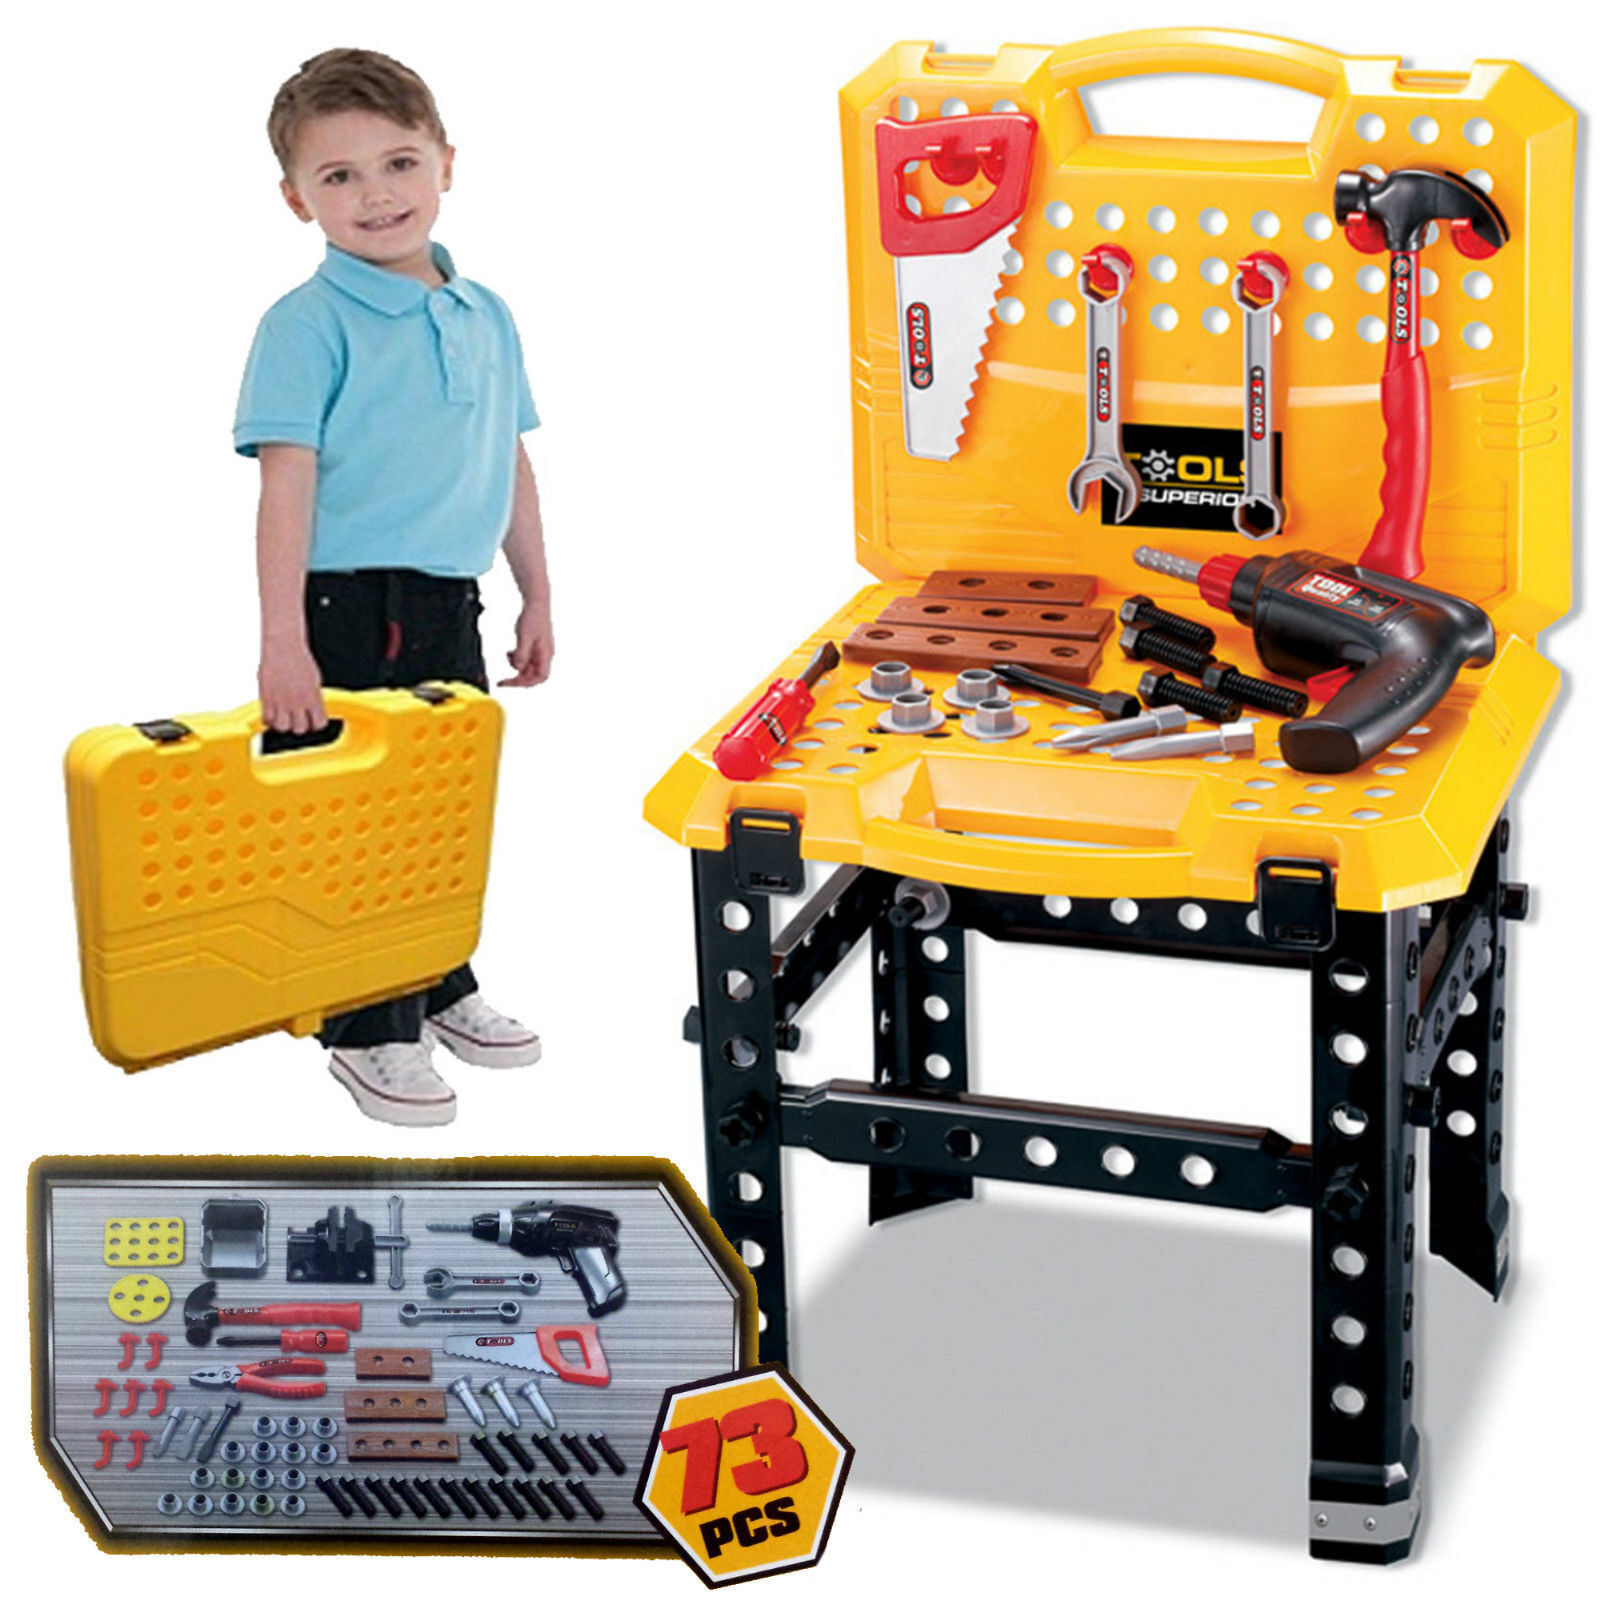 KIDS 73PC WORK BENCH PLAY SUPER TOOL DIY BUILDER CONSTRUCTION TOY DRILL KIT SET